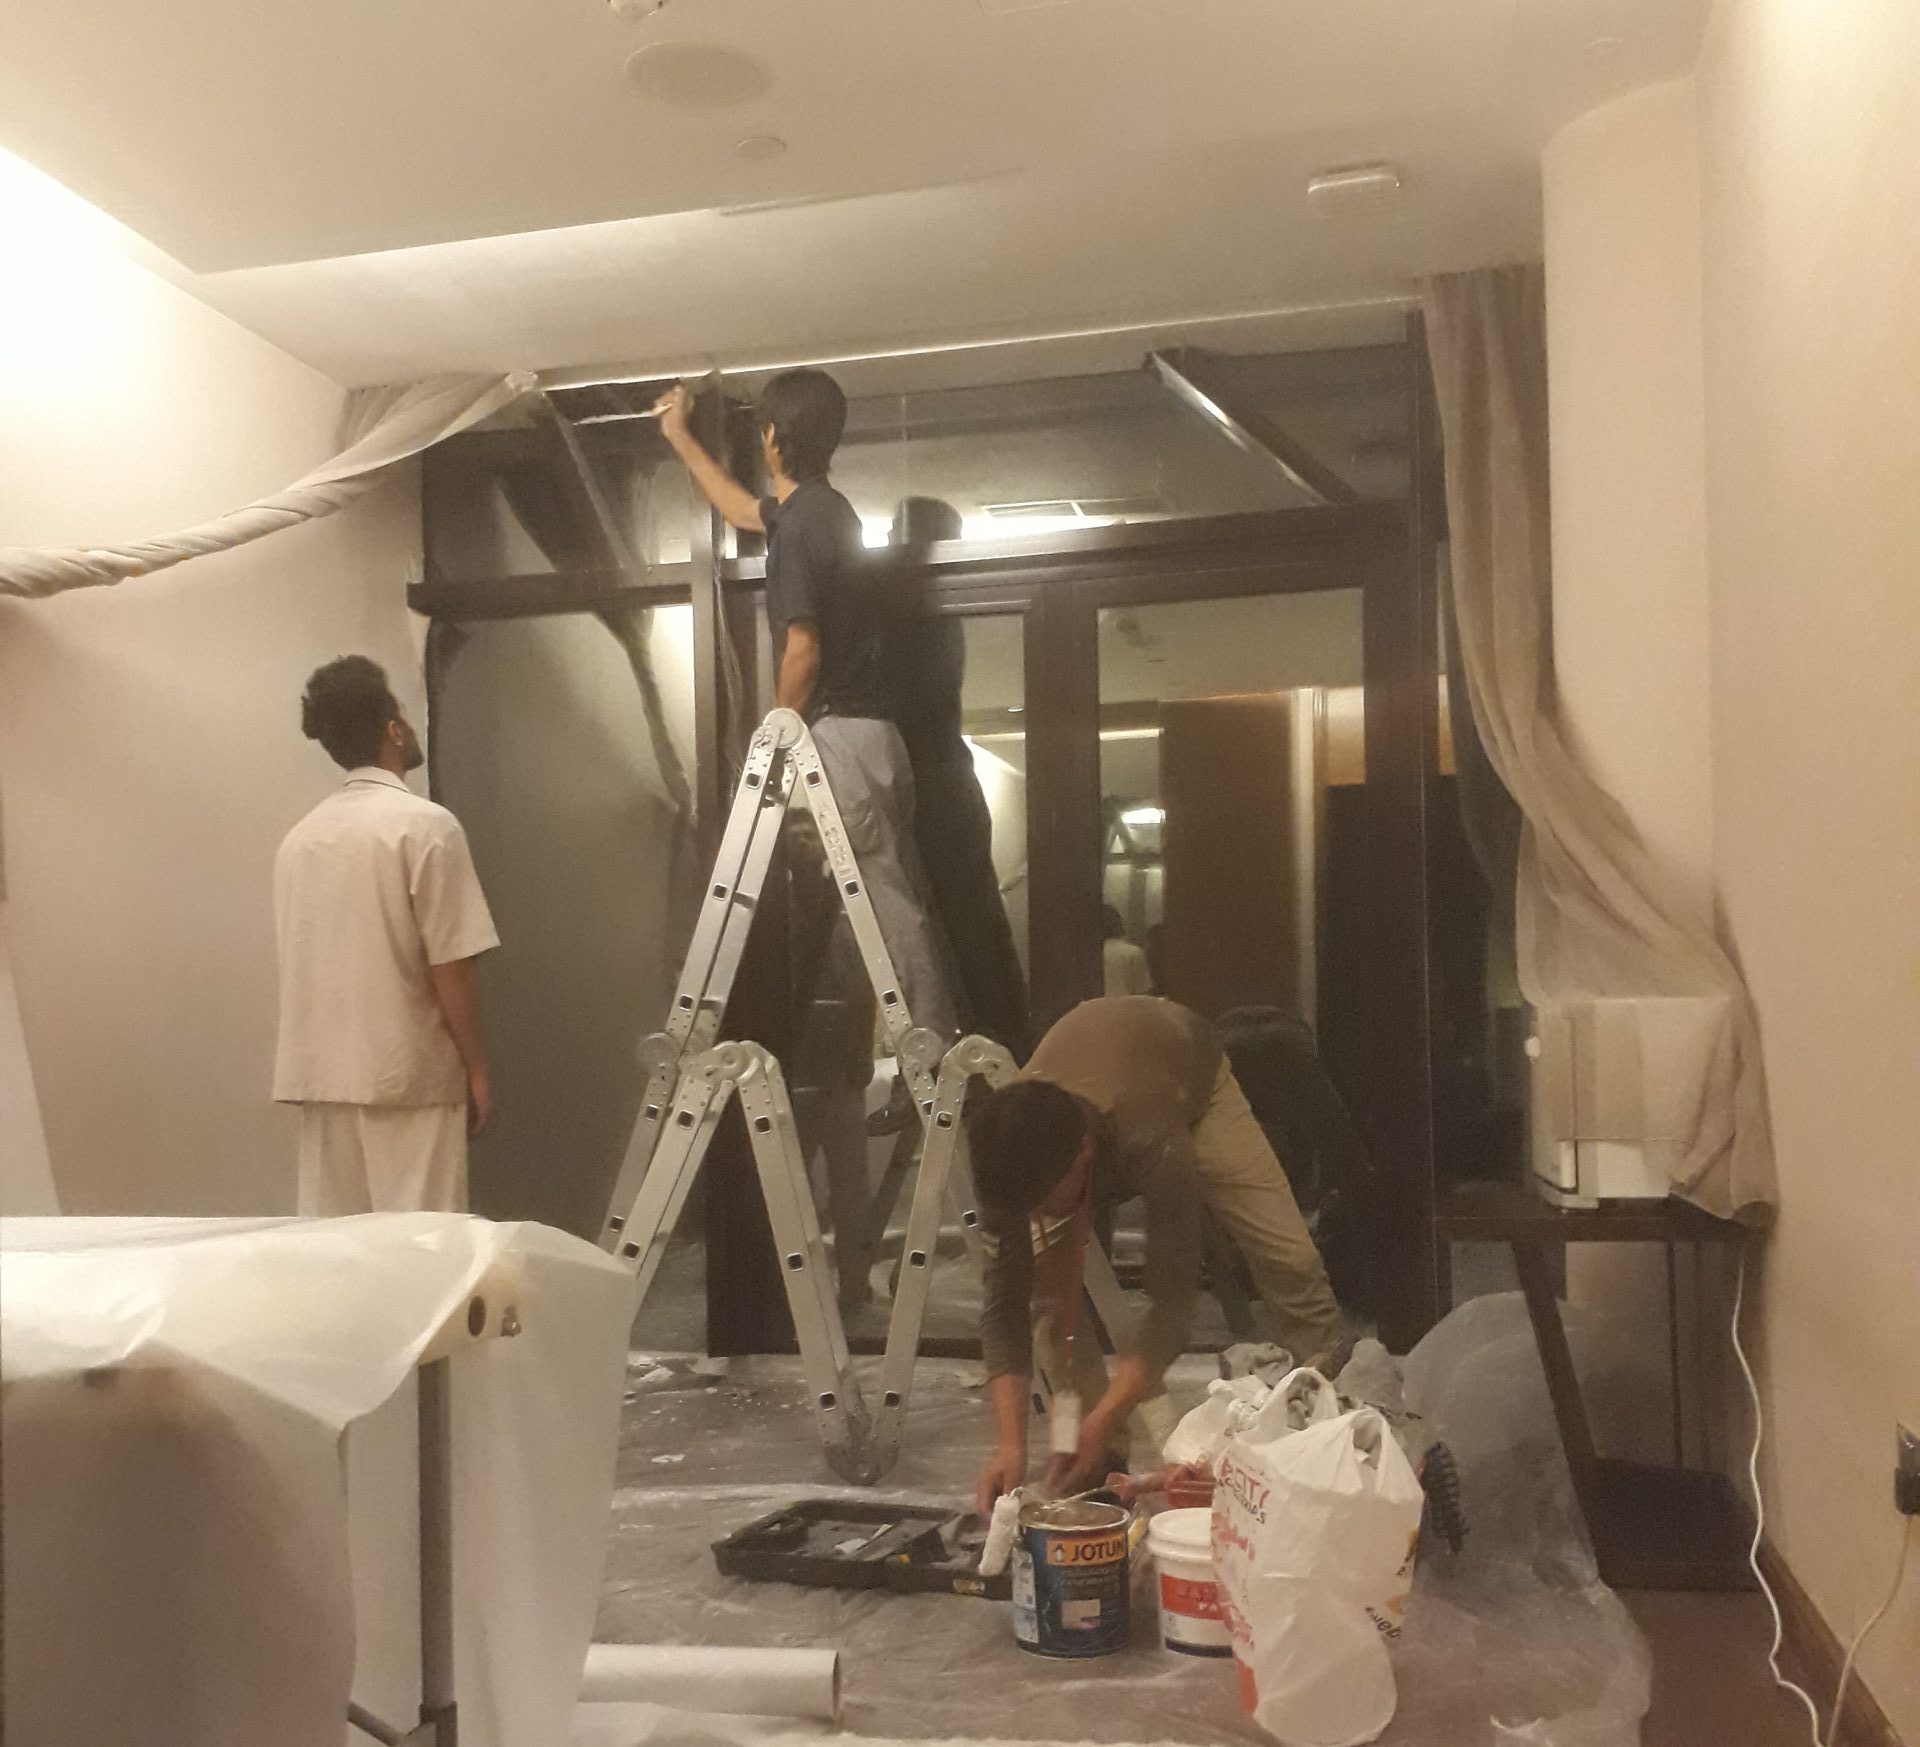 Ceiling Repairing and Painting Work at Jumeirah Creekside Hotel